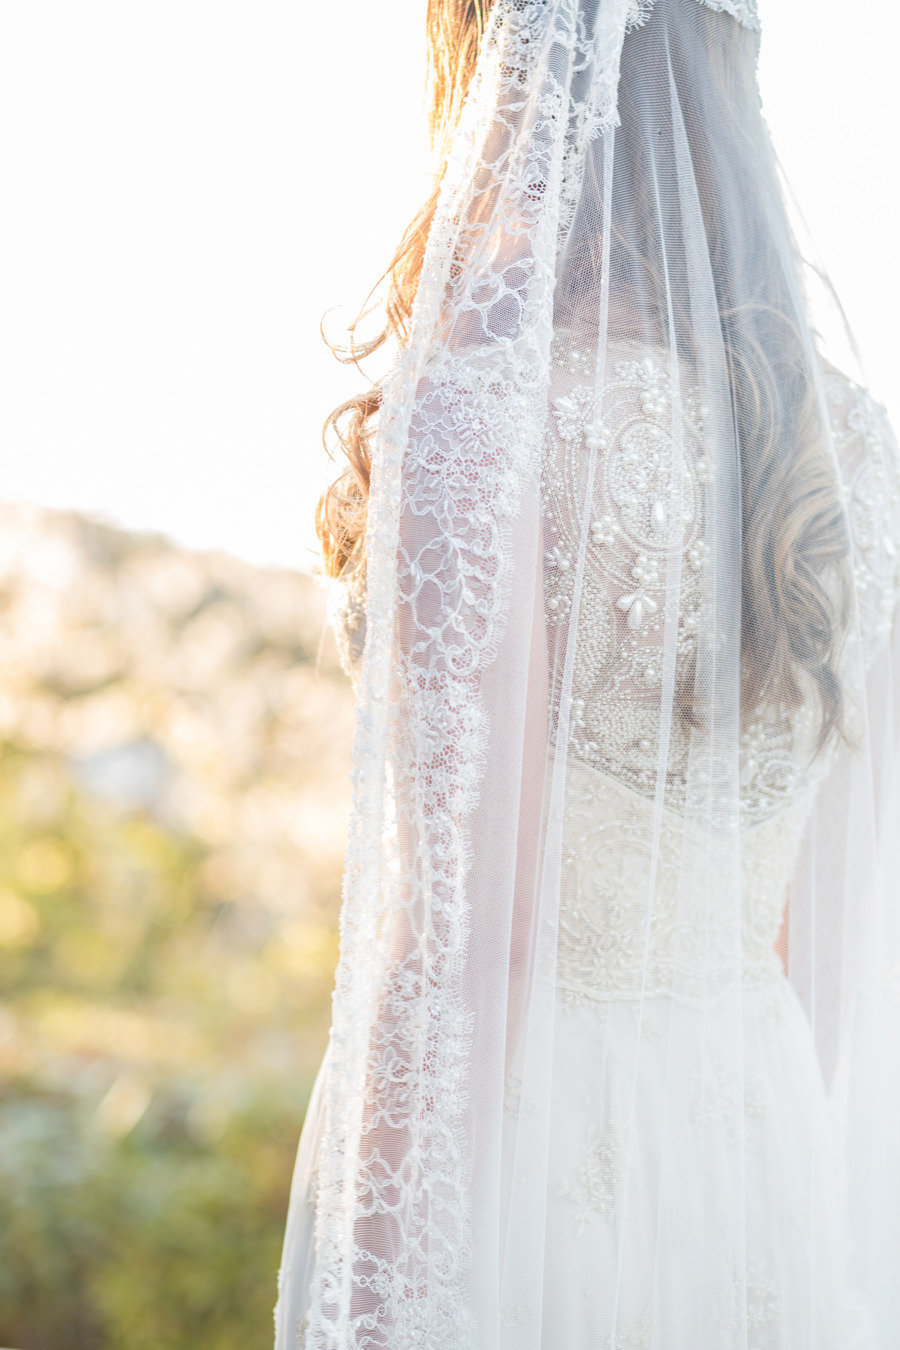 Artemis_champagne_beaded_back_lace_wedding_dress_veil_JoanneFlemingDesign_AveryLynnPhoto